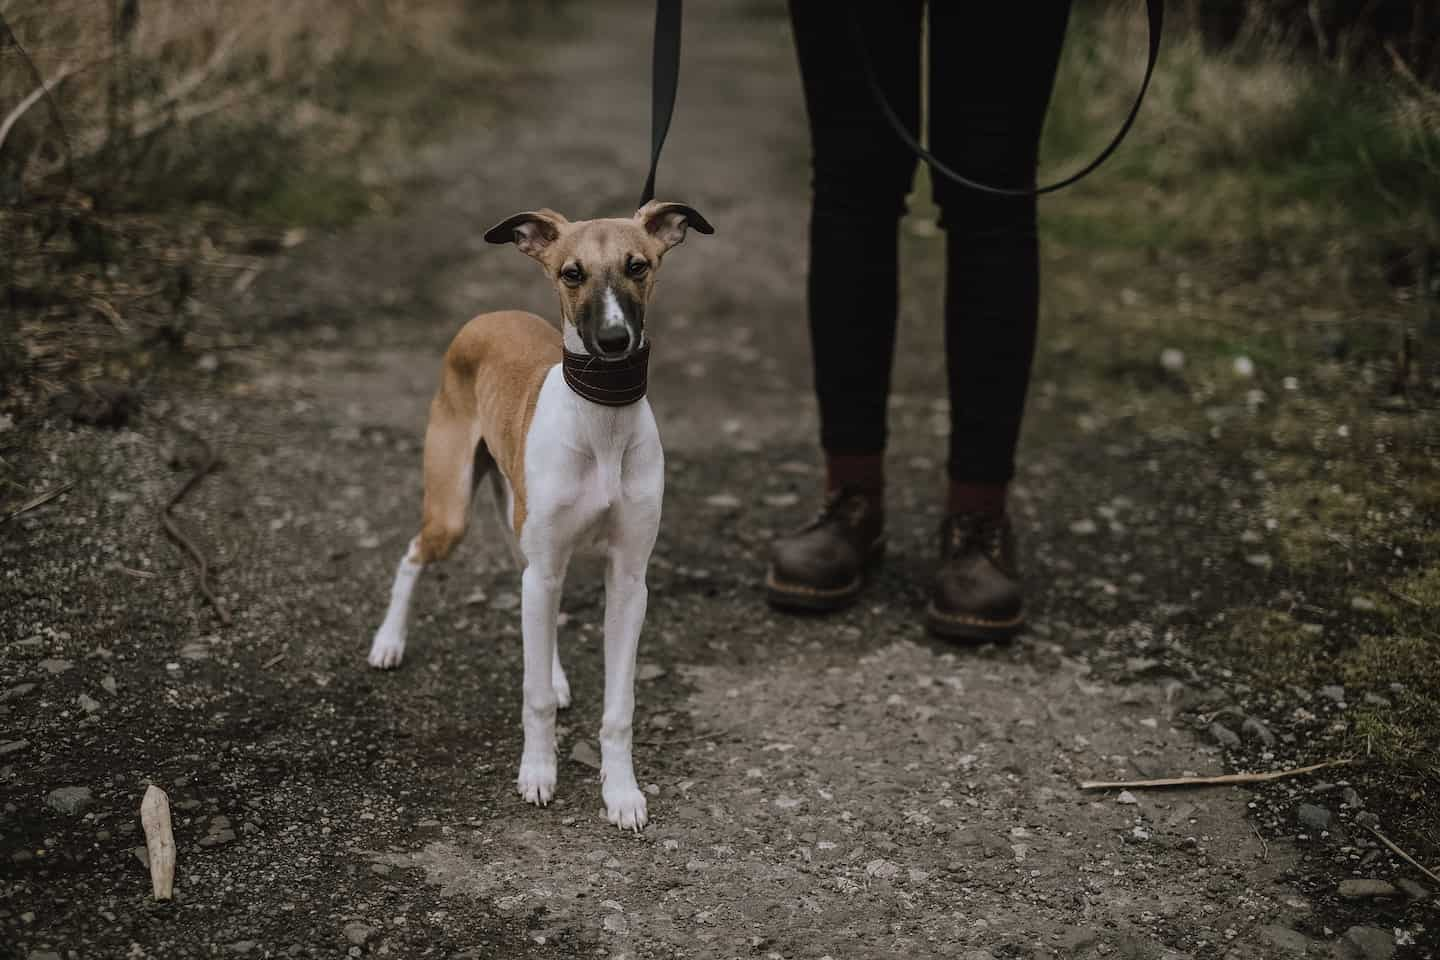 London Support Groups for Dog Owners in Self-Isolation